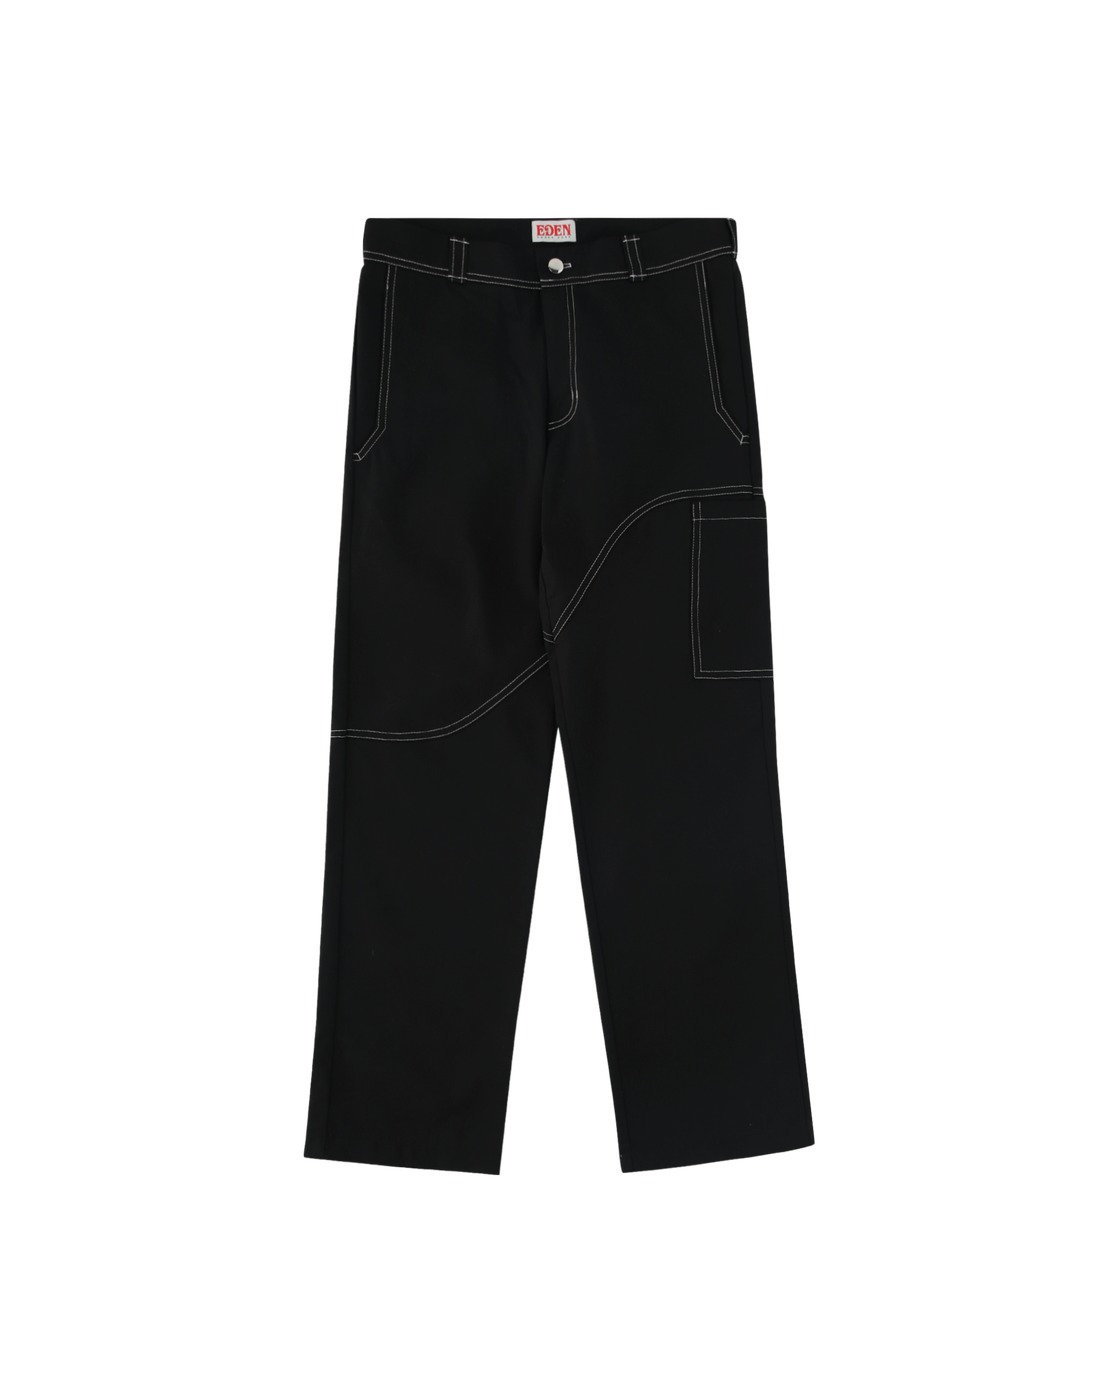 Eden Power Corp Corp Cargo Pants Black